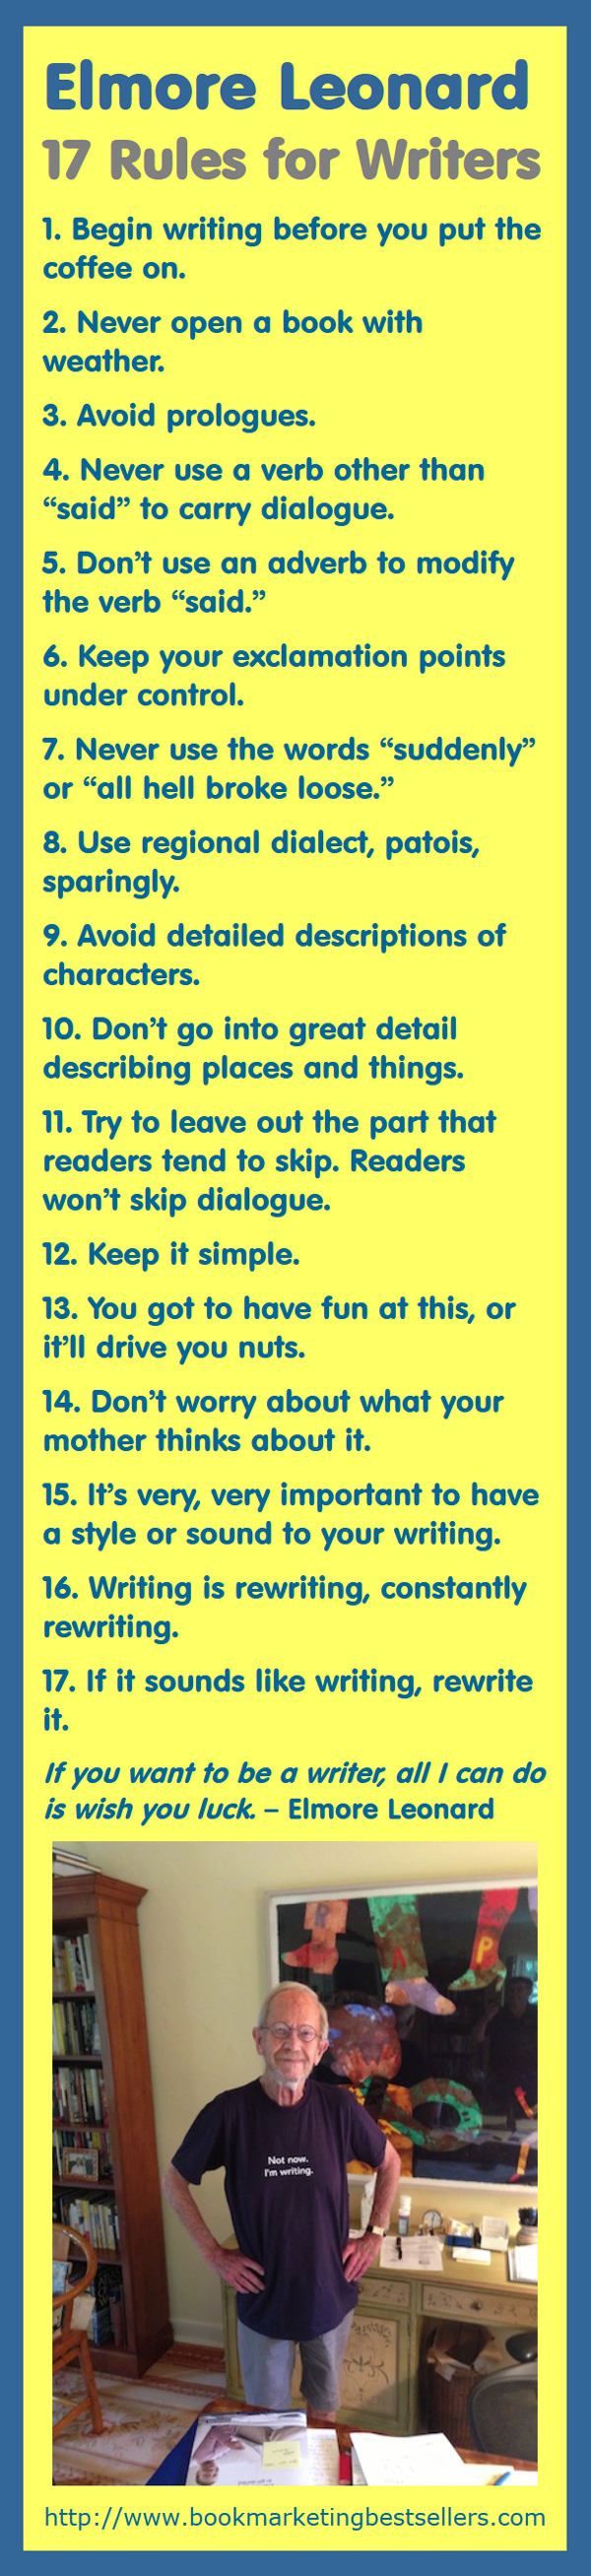 Elmore Leonard: 17 Really Great Rules for Writers #writers #writing #authors #books